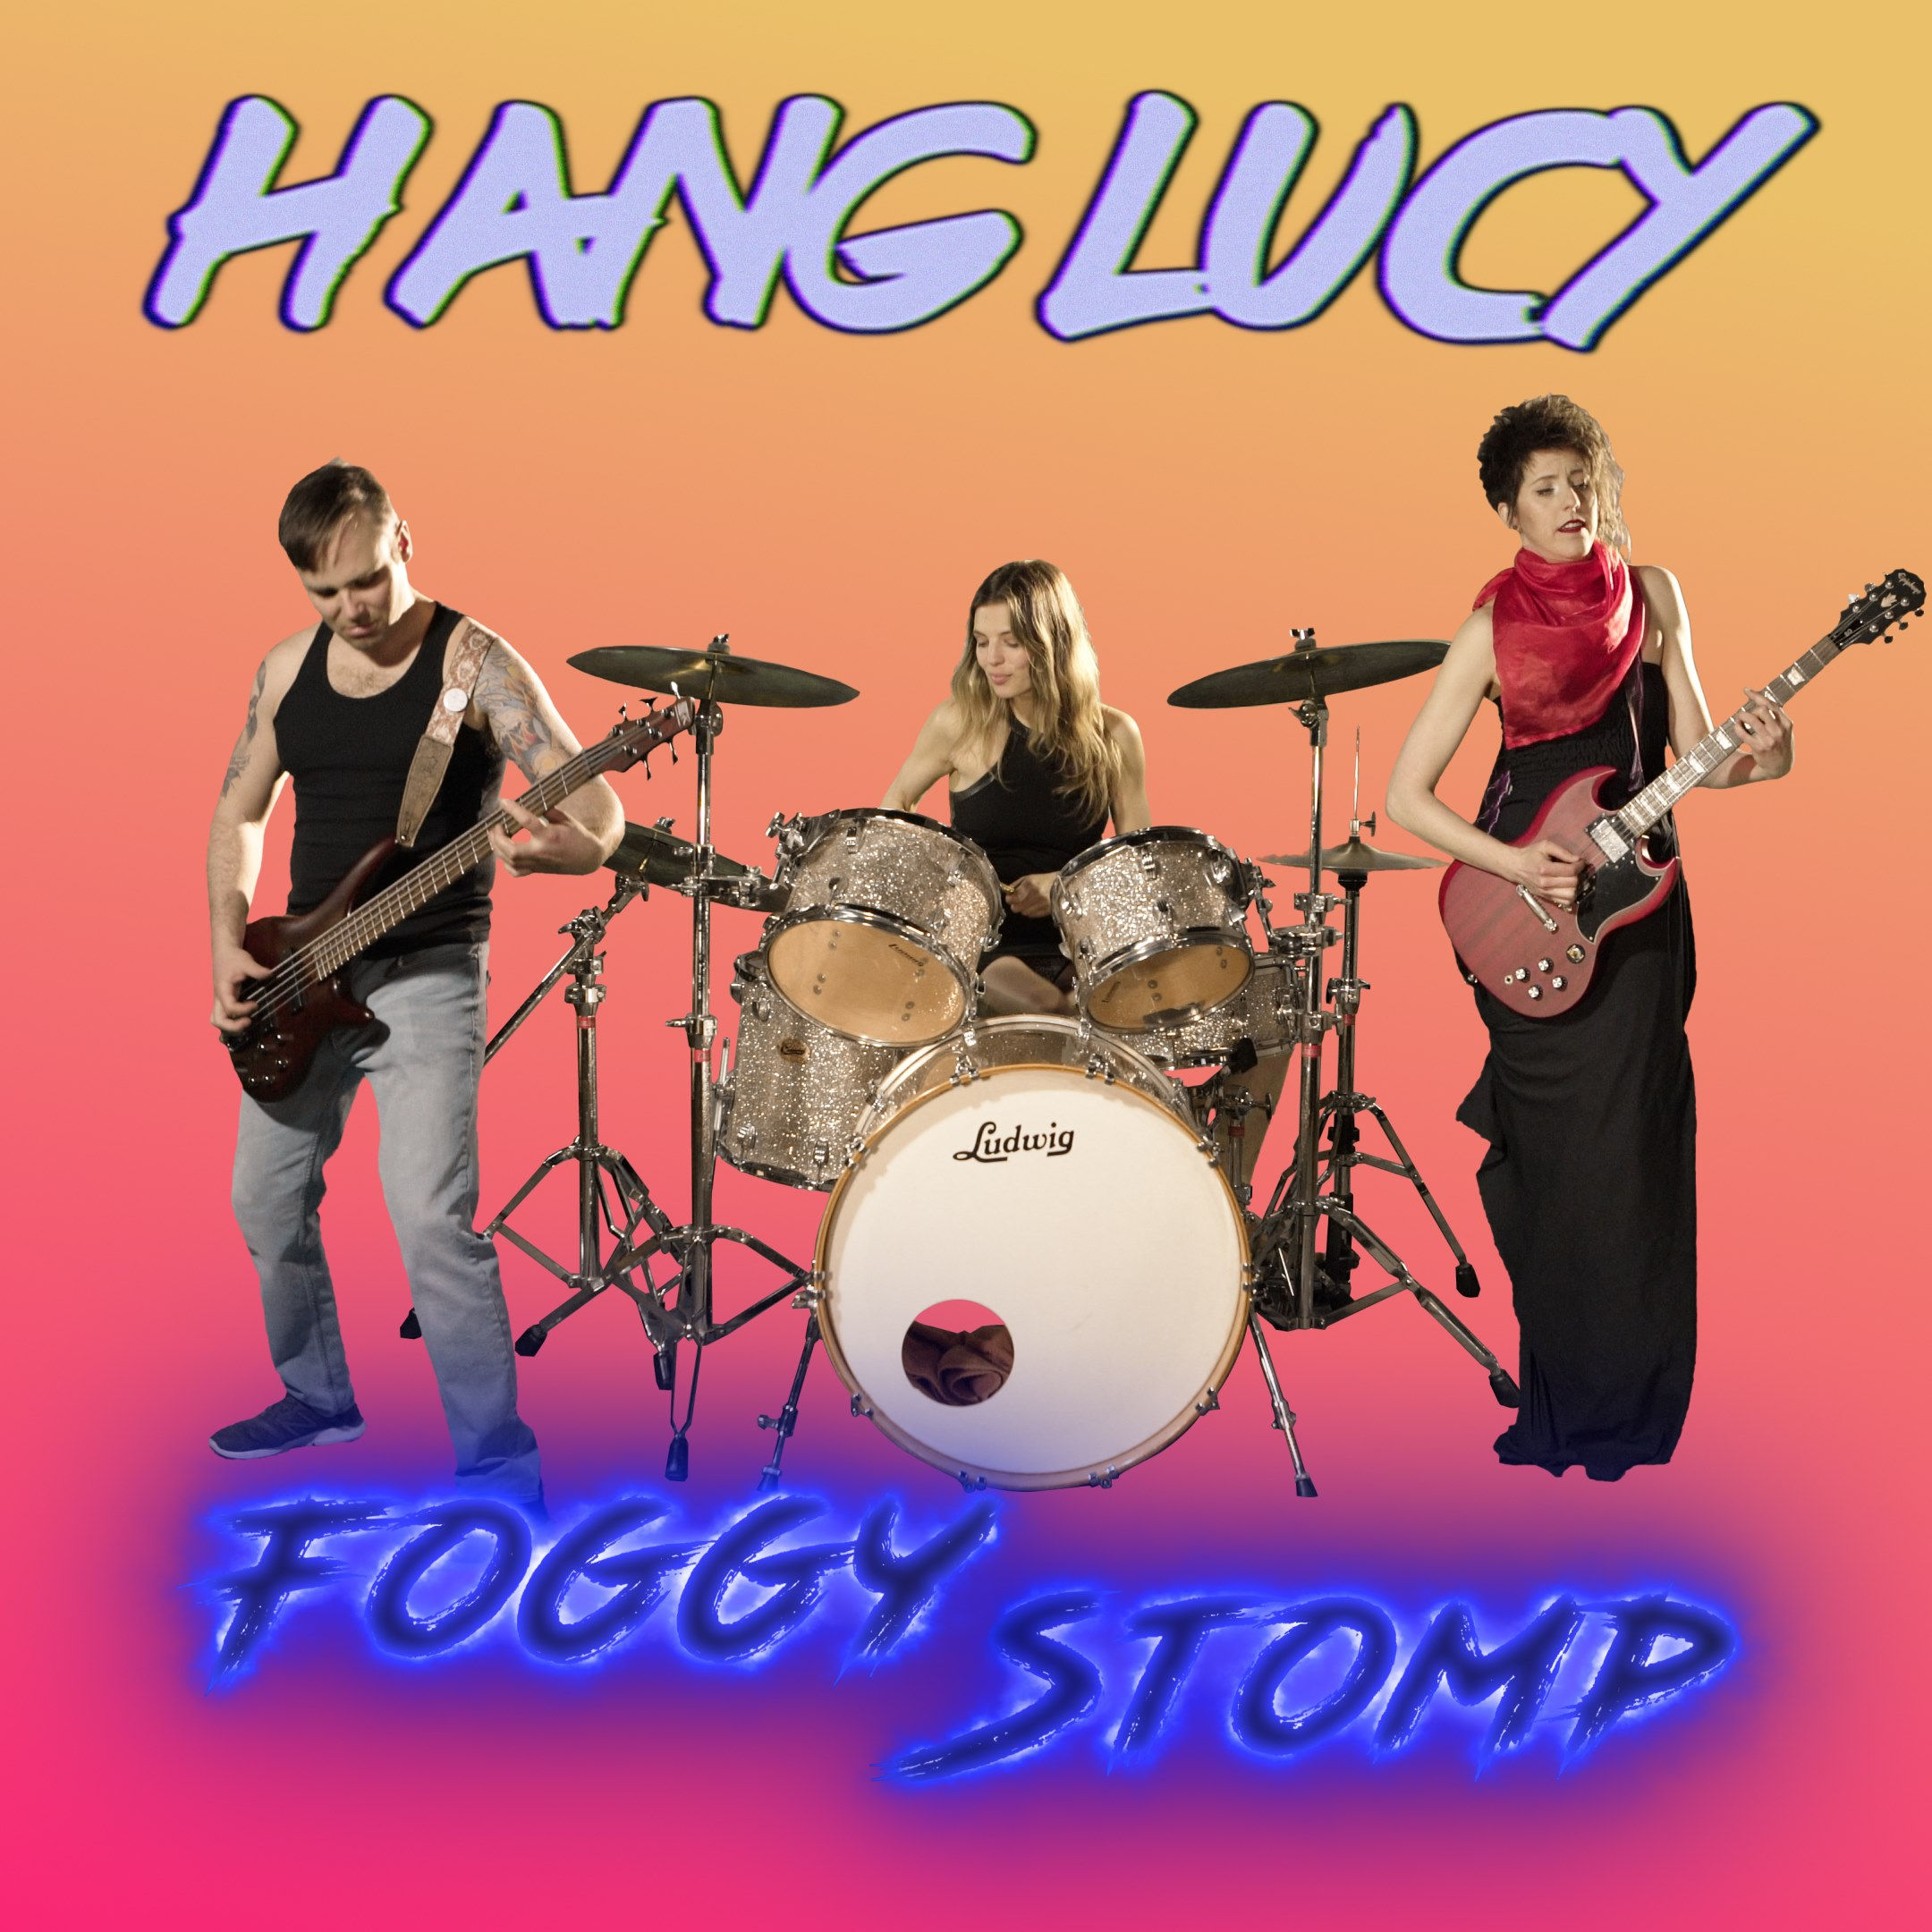 New Single: FOGGY STOMP - From May 31st, stream or buy Hang Lucy's latest track on any/every major digital music platform.Music Video premieres on YouTube.